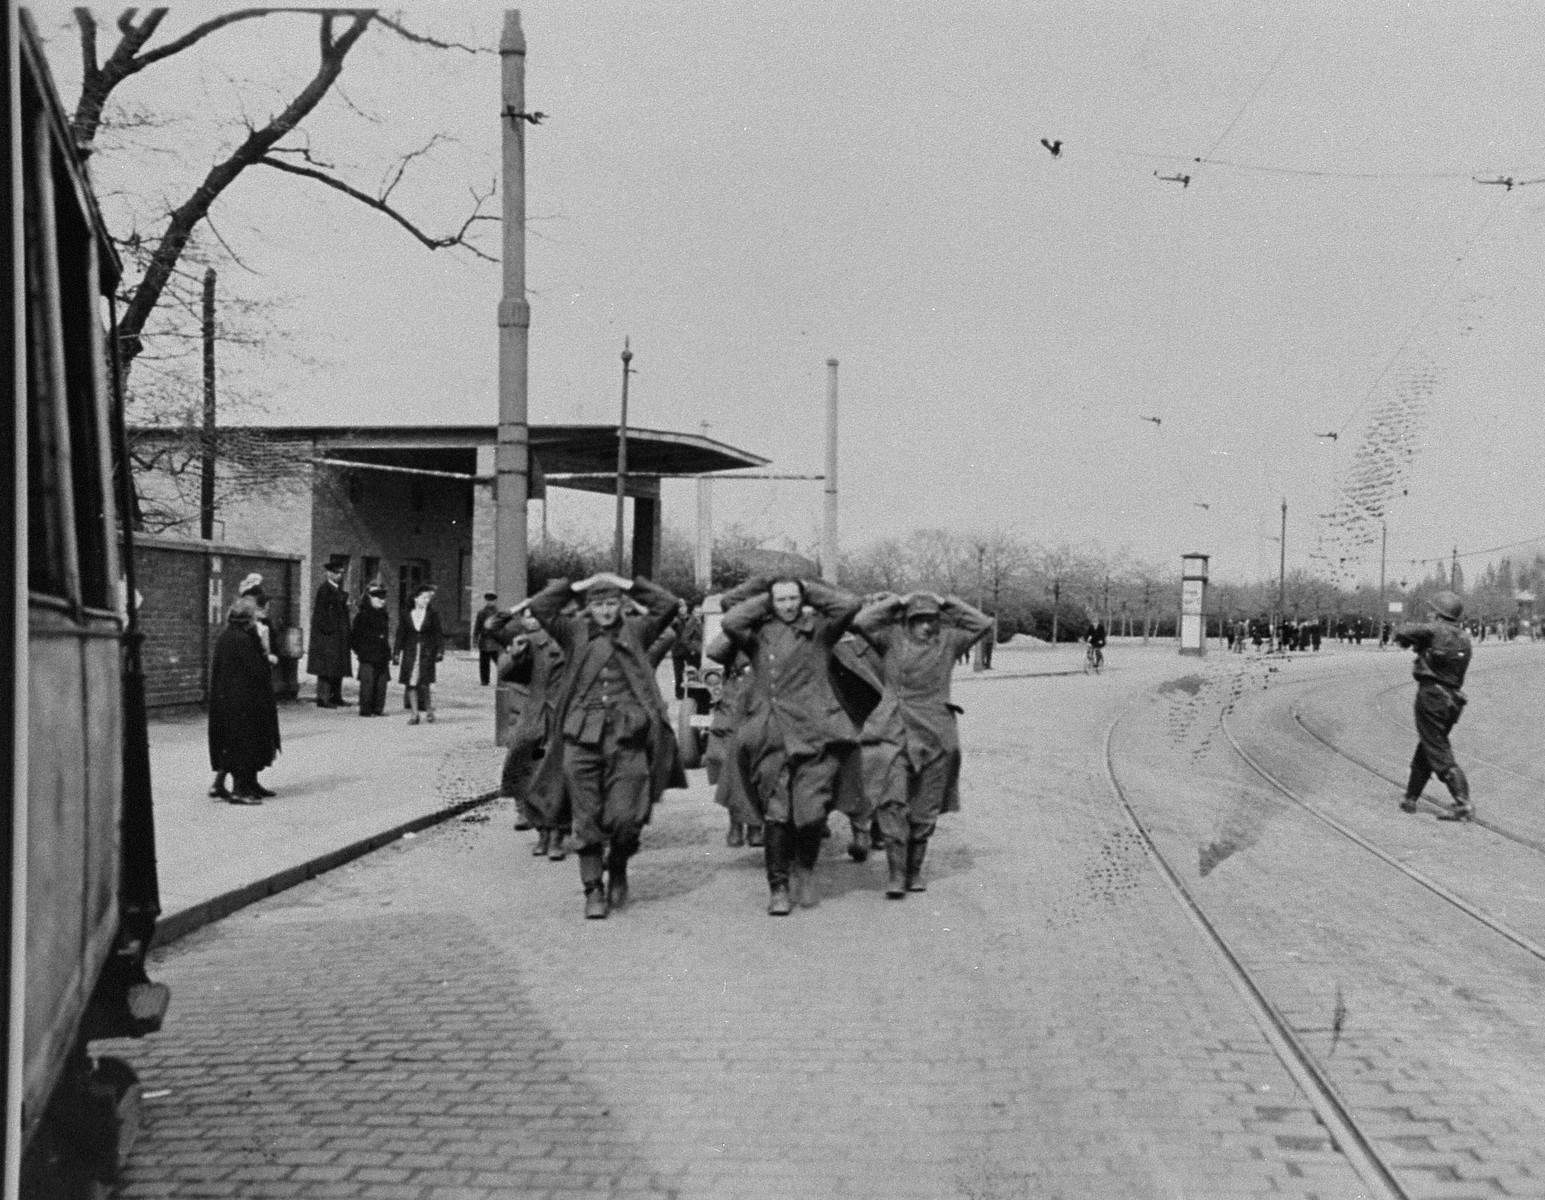 Former SS guards from Buchenwald who have been captured by American troops, march along a street with their hands behind their heads.